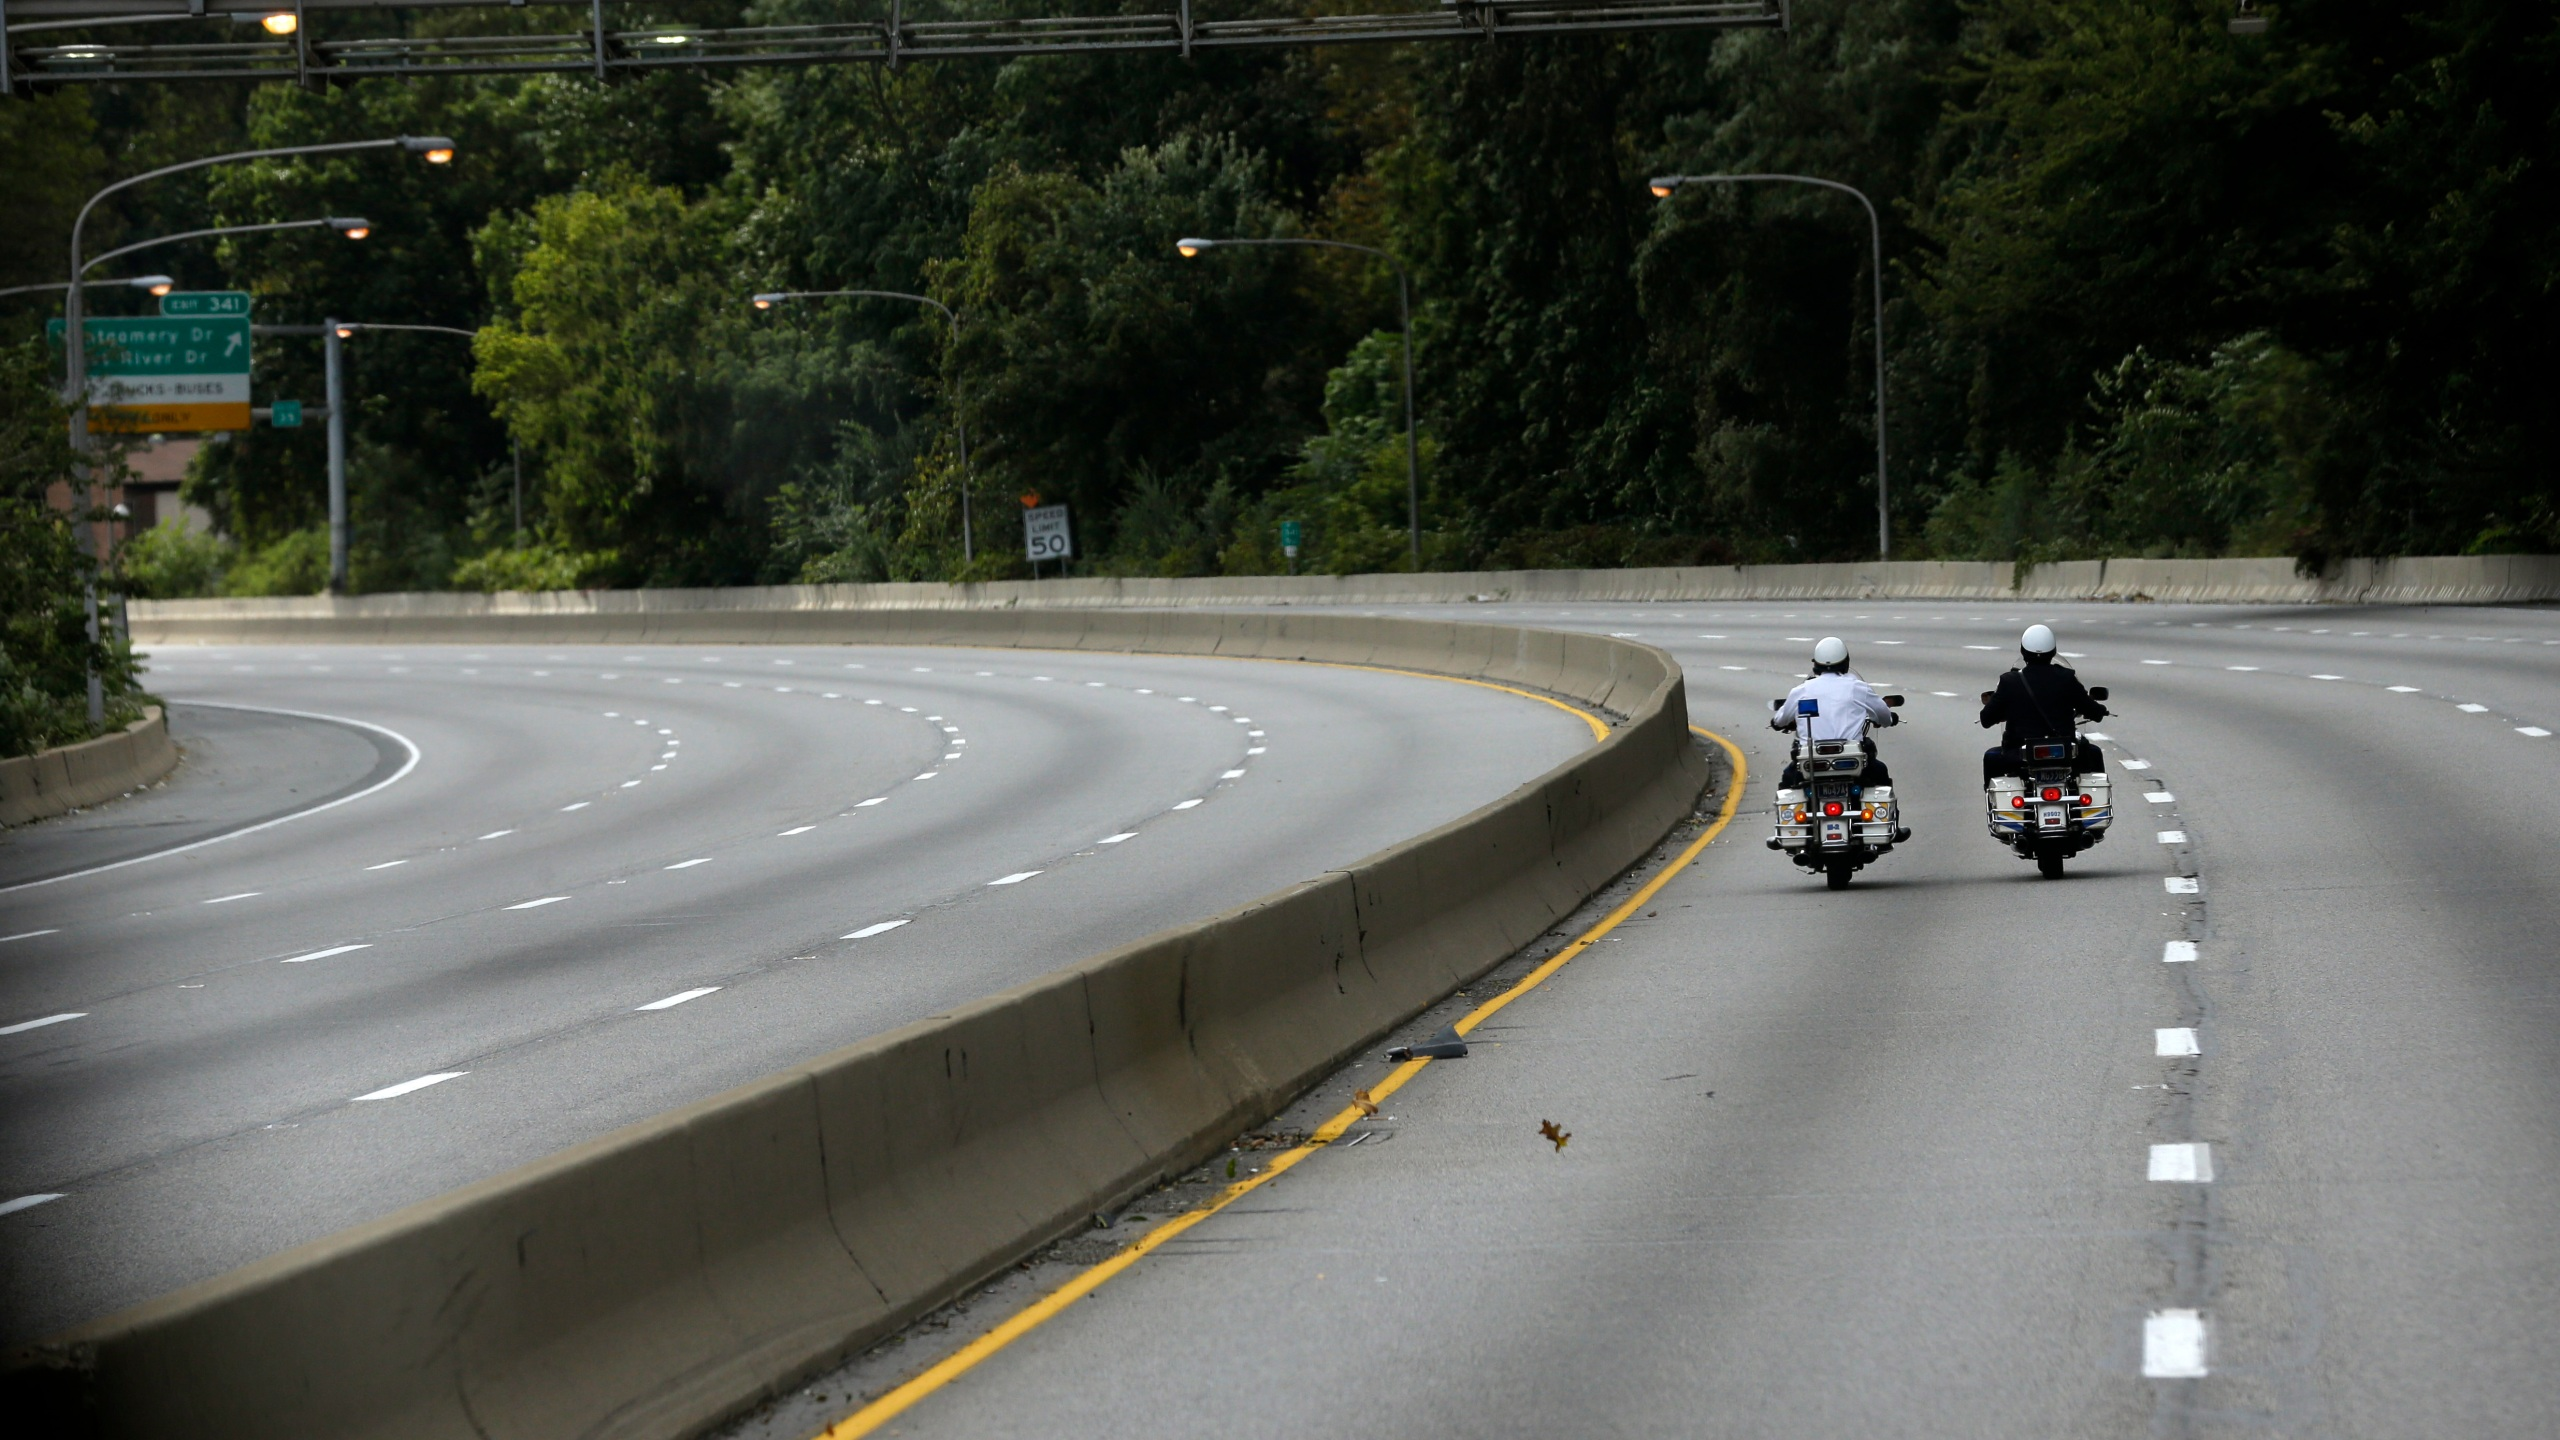 Motorcycle_Safety_63323-159532.jpg25479500